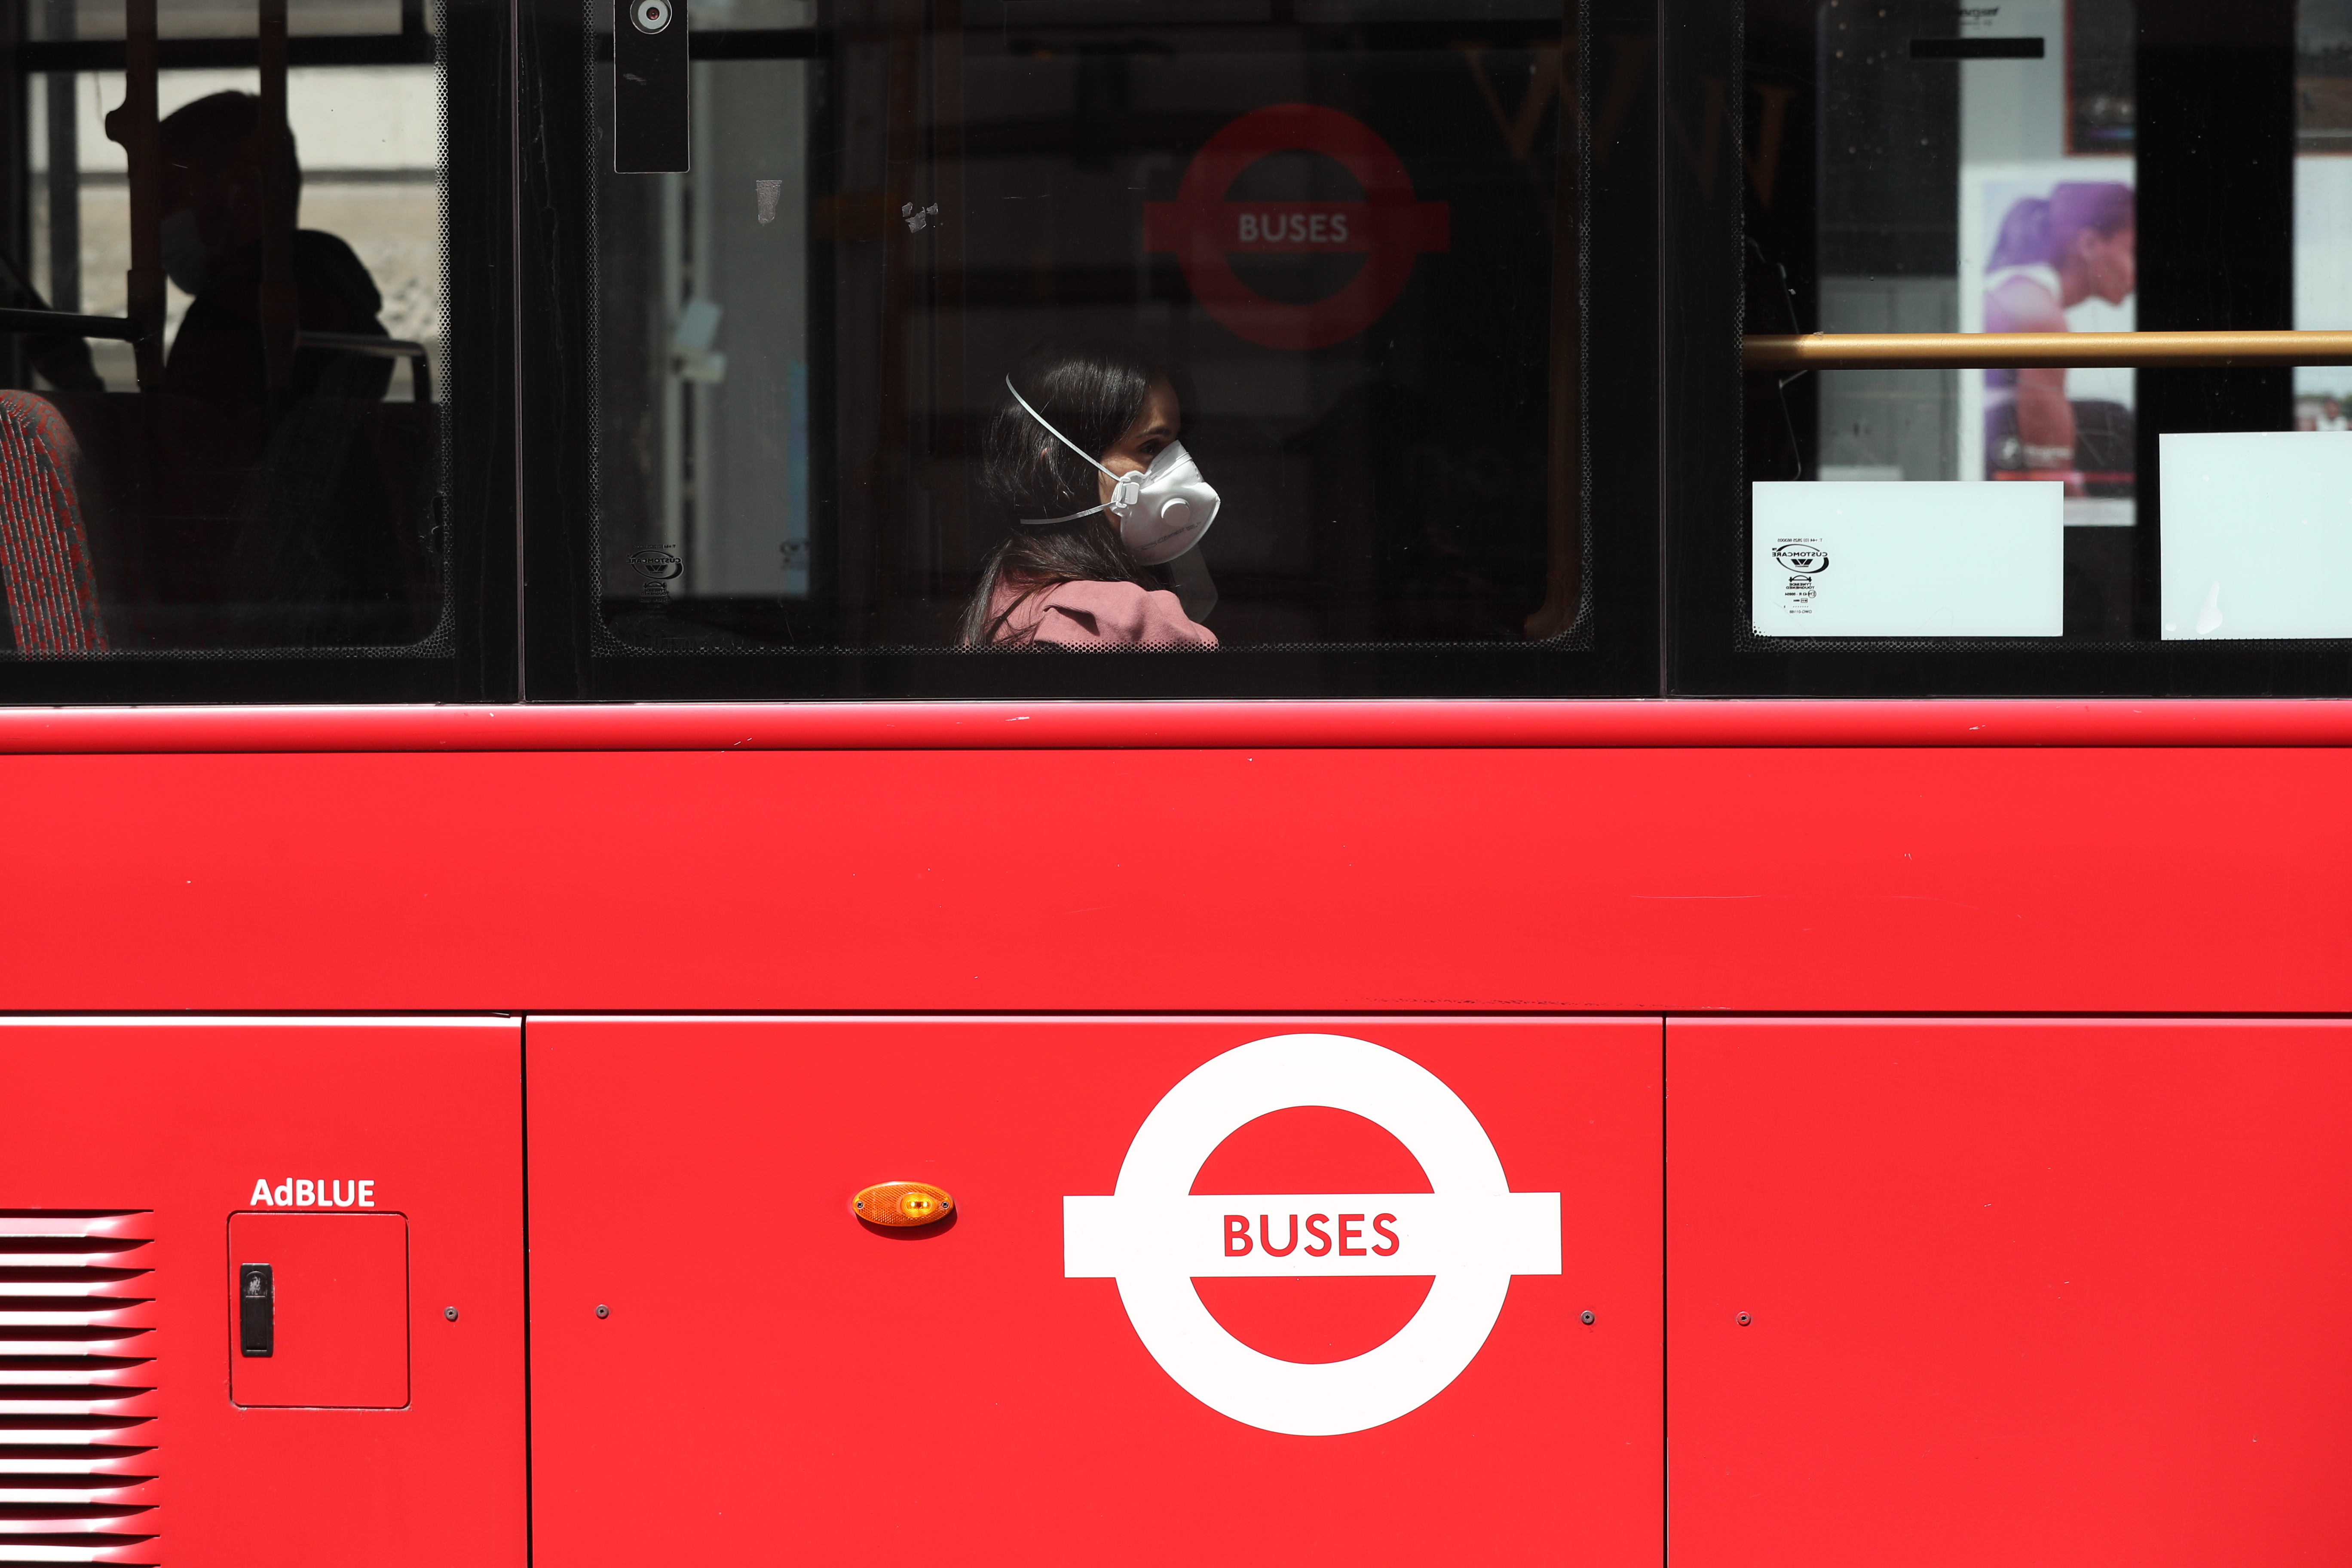 A person wearing a face mask rides a bus on Piccadilly, London, following the introduction of measures to bring England out of lockdown. (Photo by Jonathan Brady/PA Images via Getty Images)